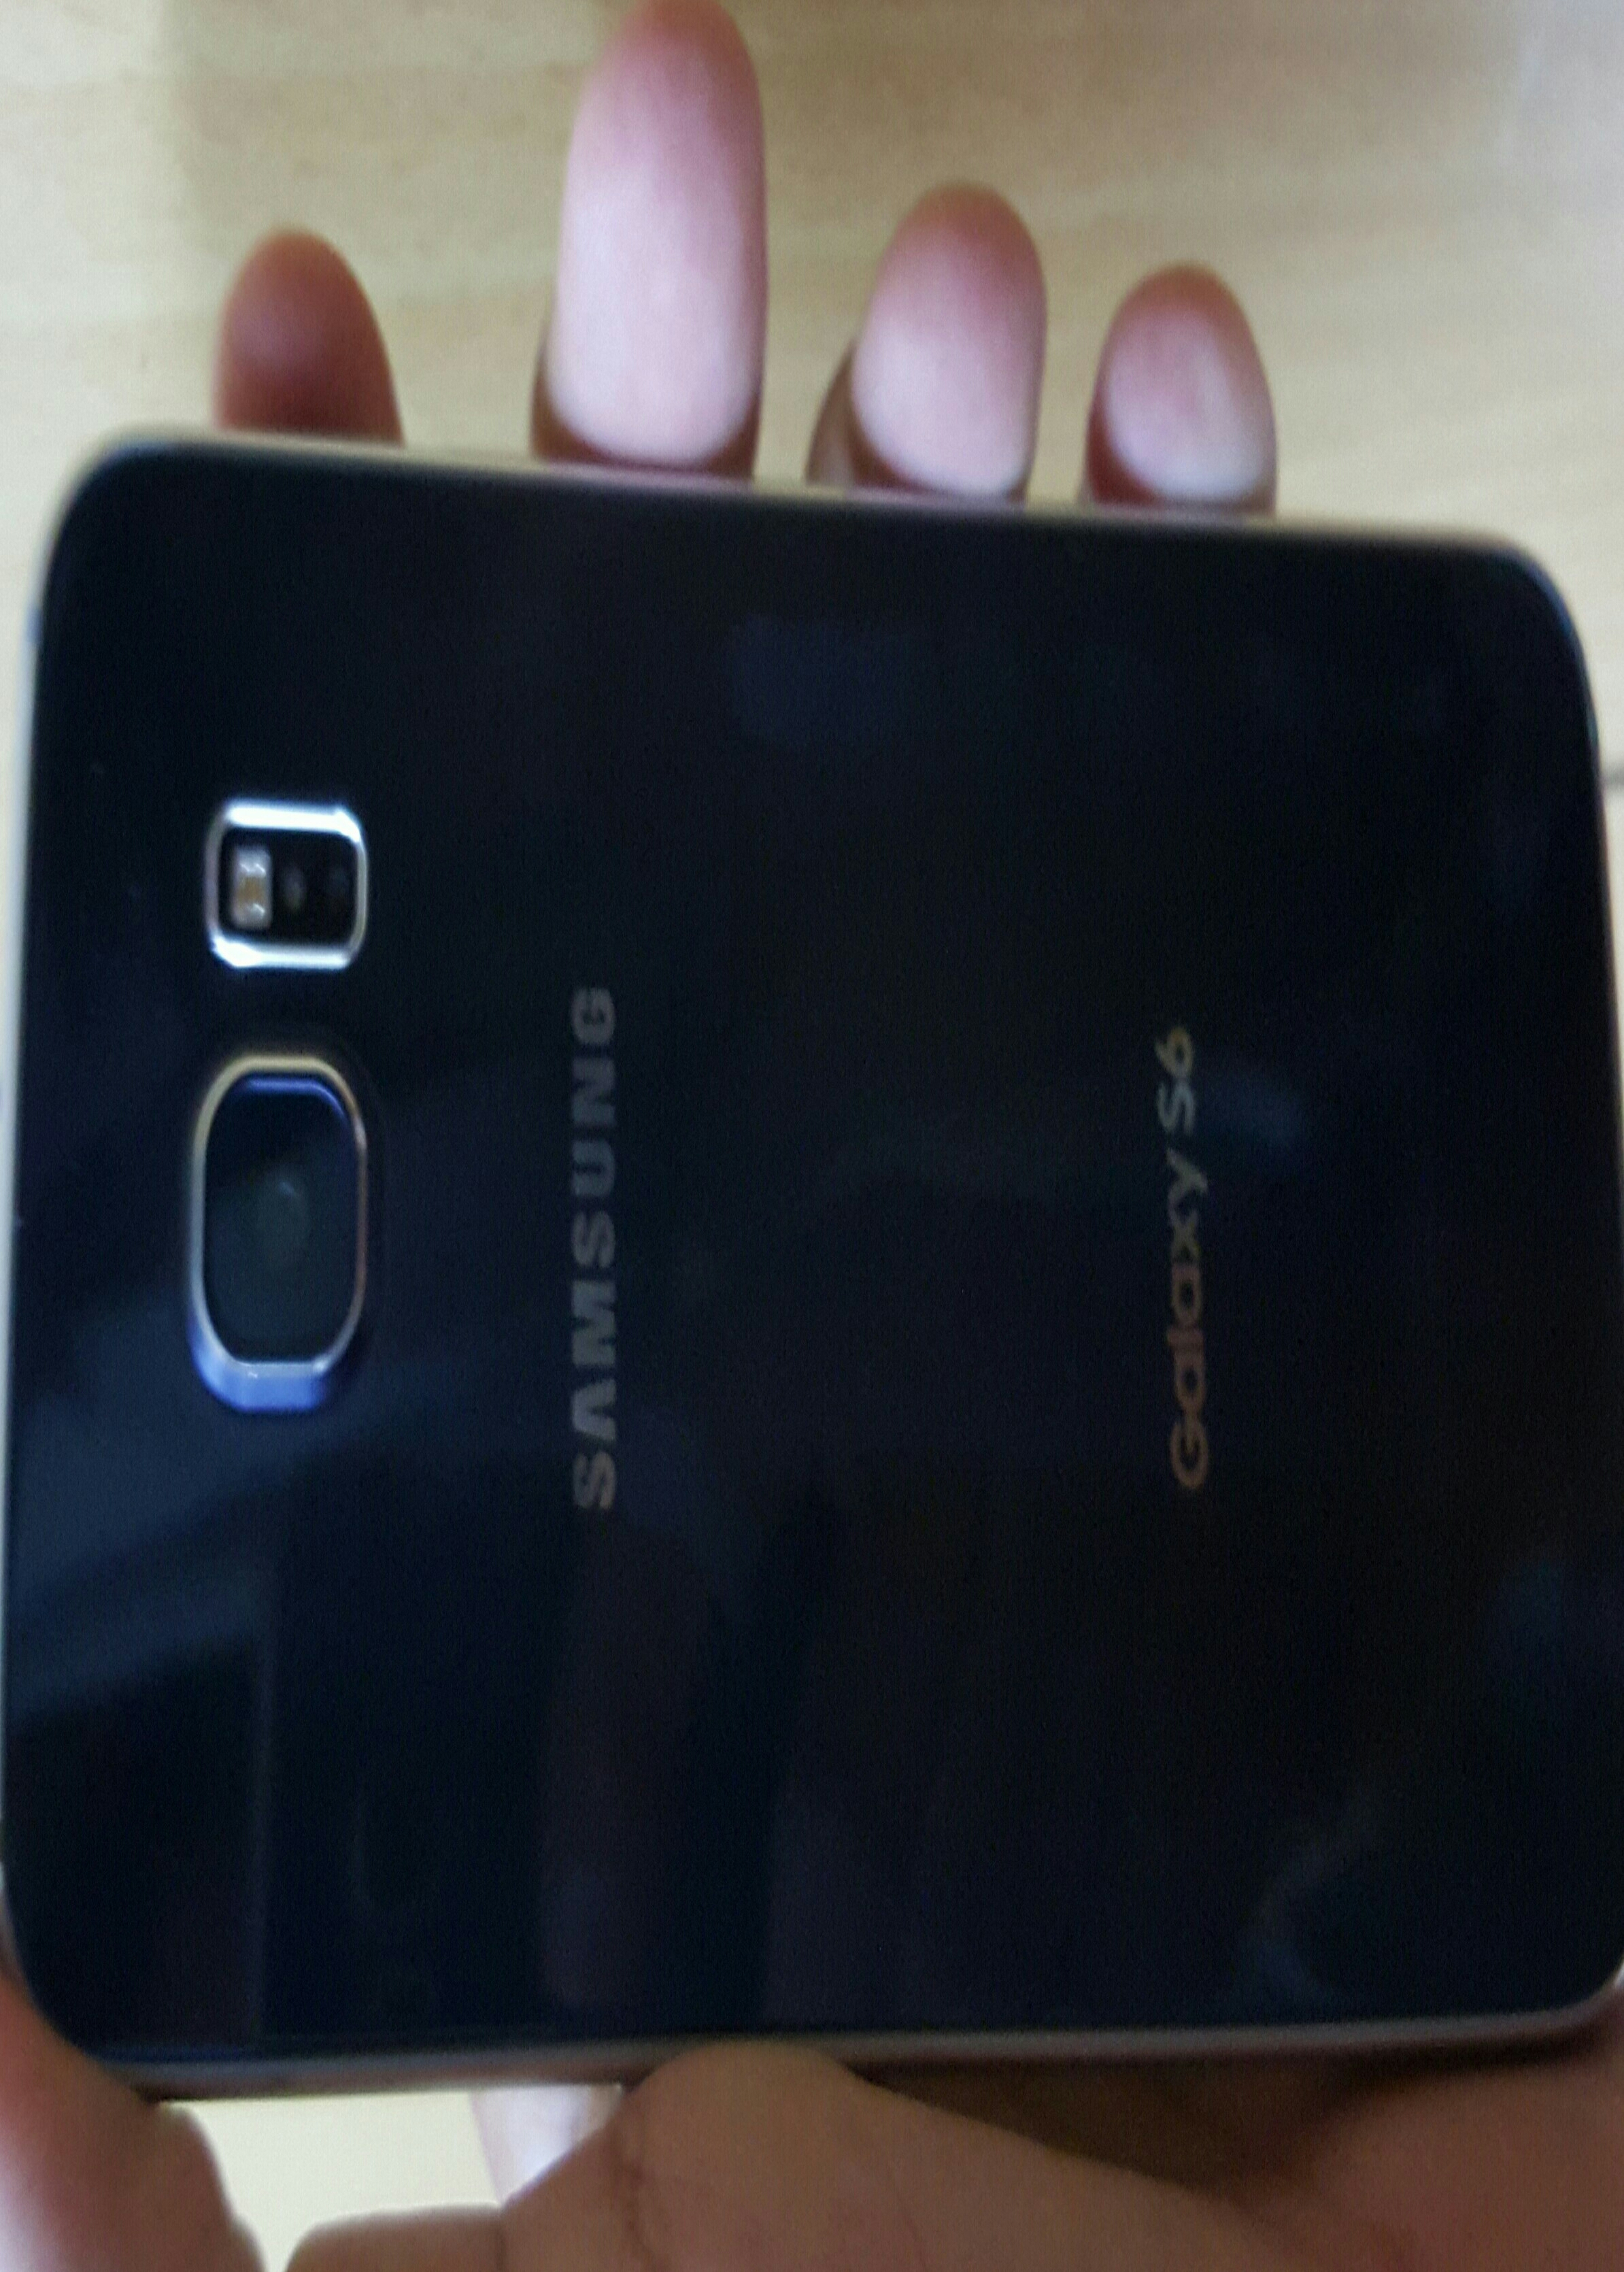 Samsung Galaxy S 6 32 With Fast Charger A+condition No Scratches